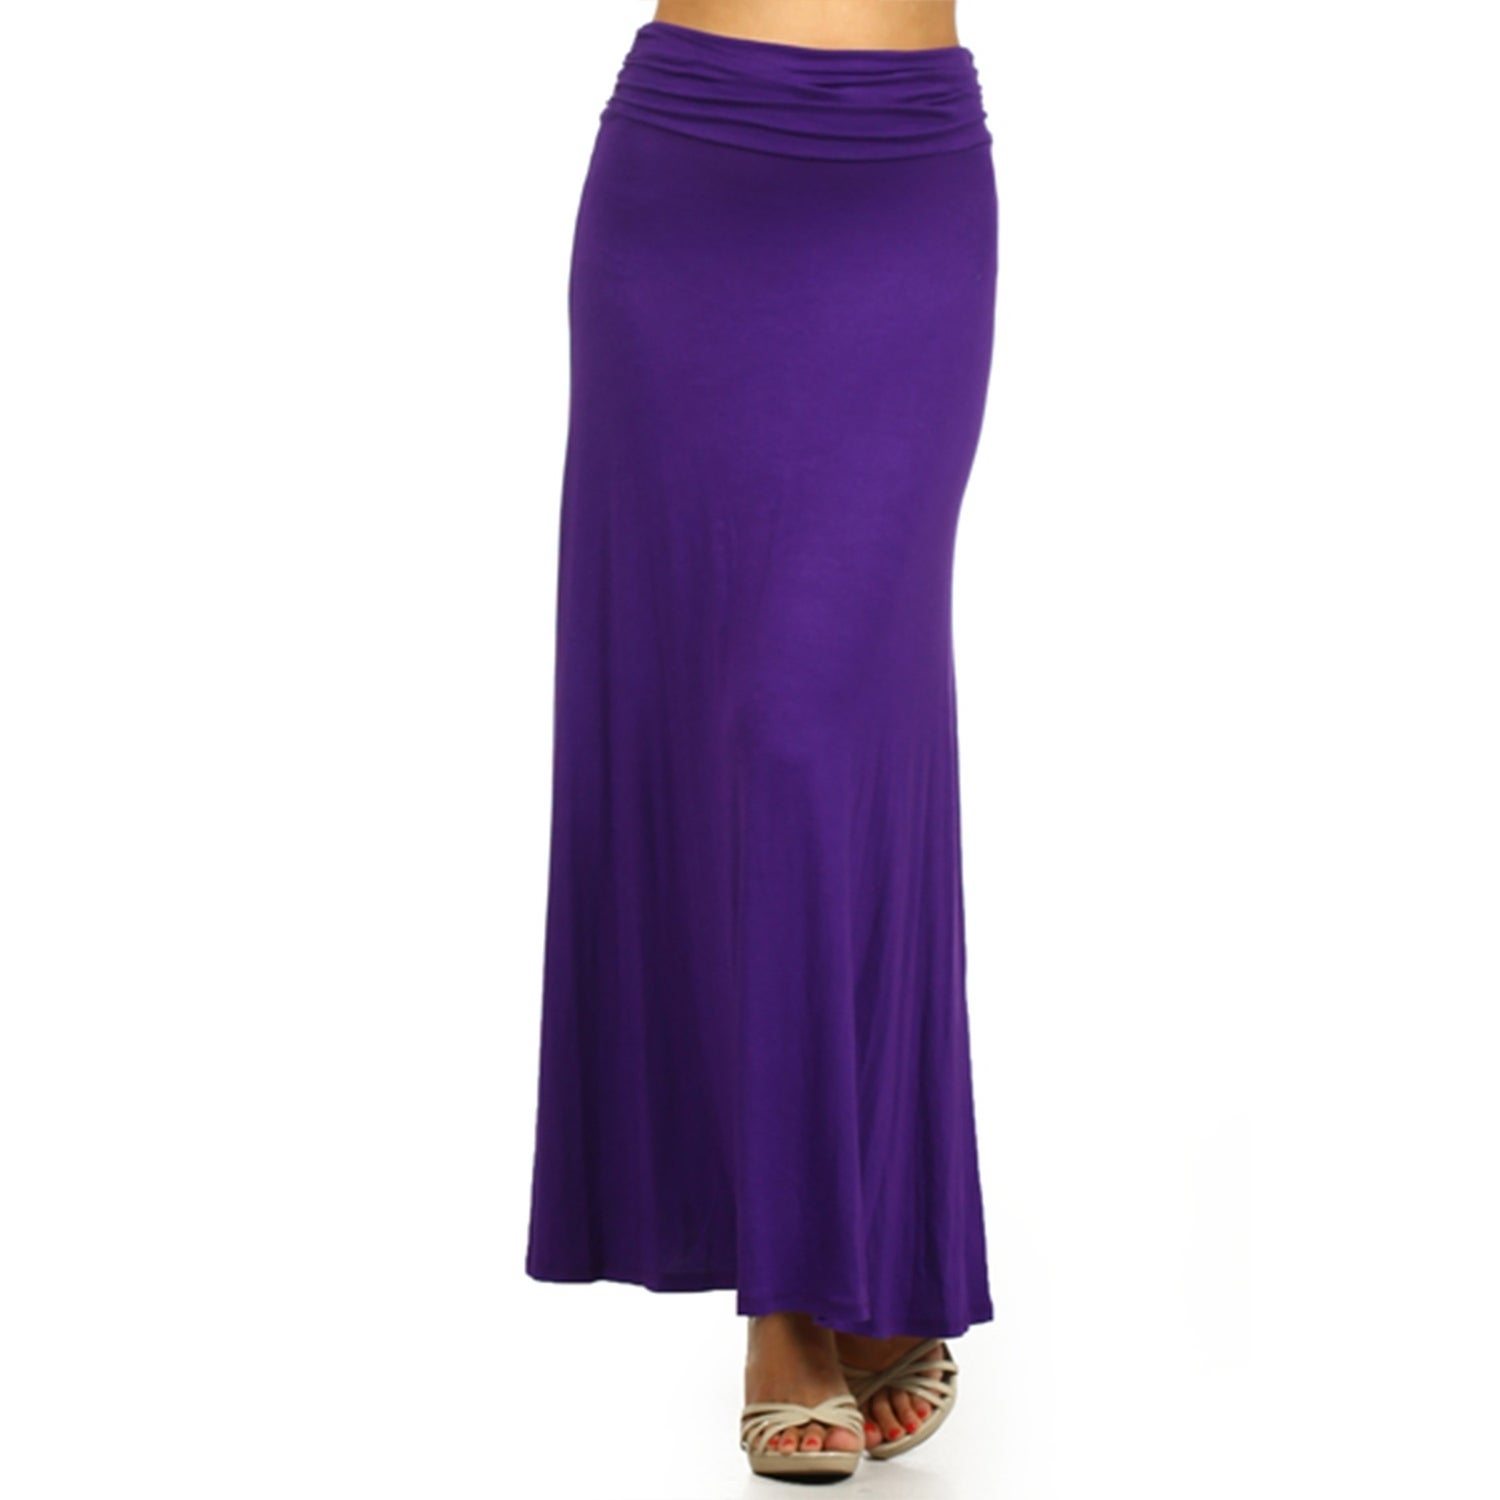 9ec9d1a56 Shop Women's Solid Relaxed Fit A-Line Maxi Skirt - On Sale - Free Shipping  On Orders Over $45 - Overstock - 22334167